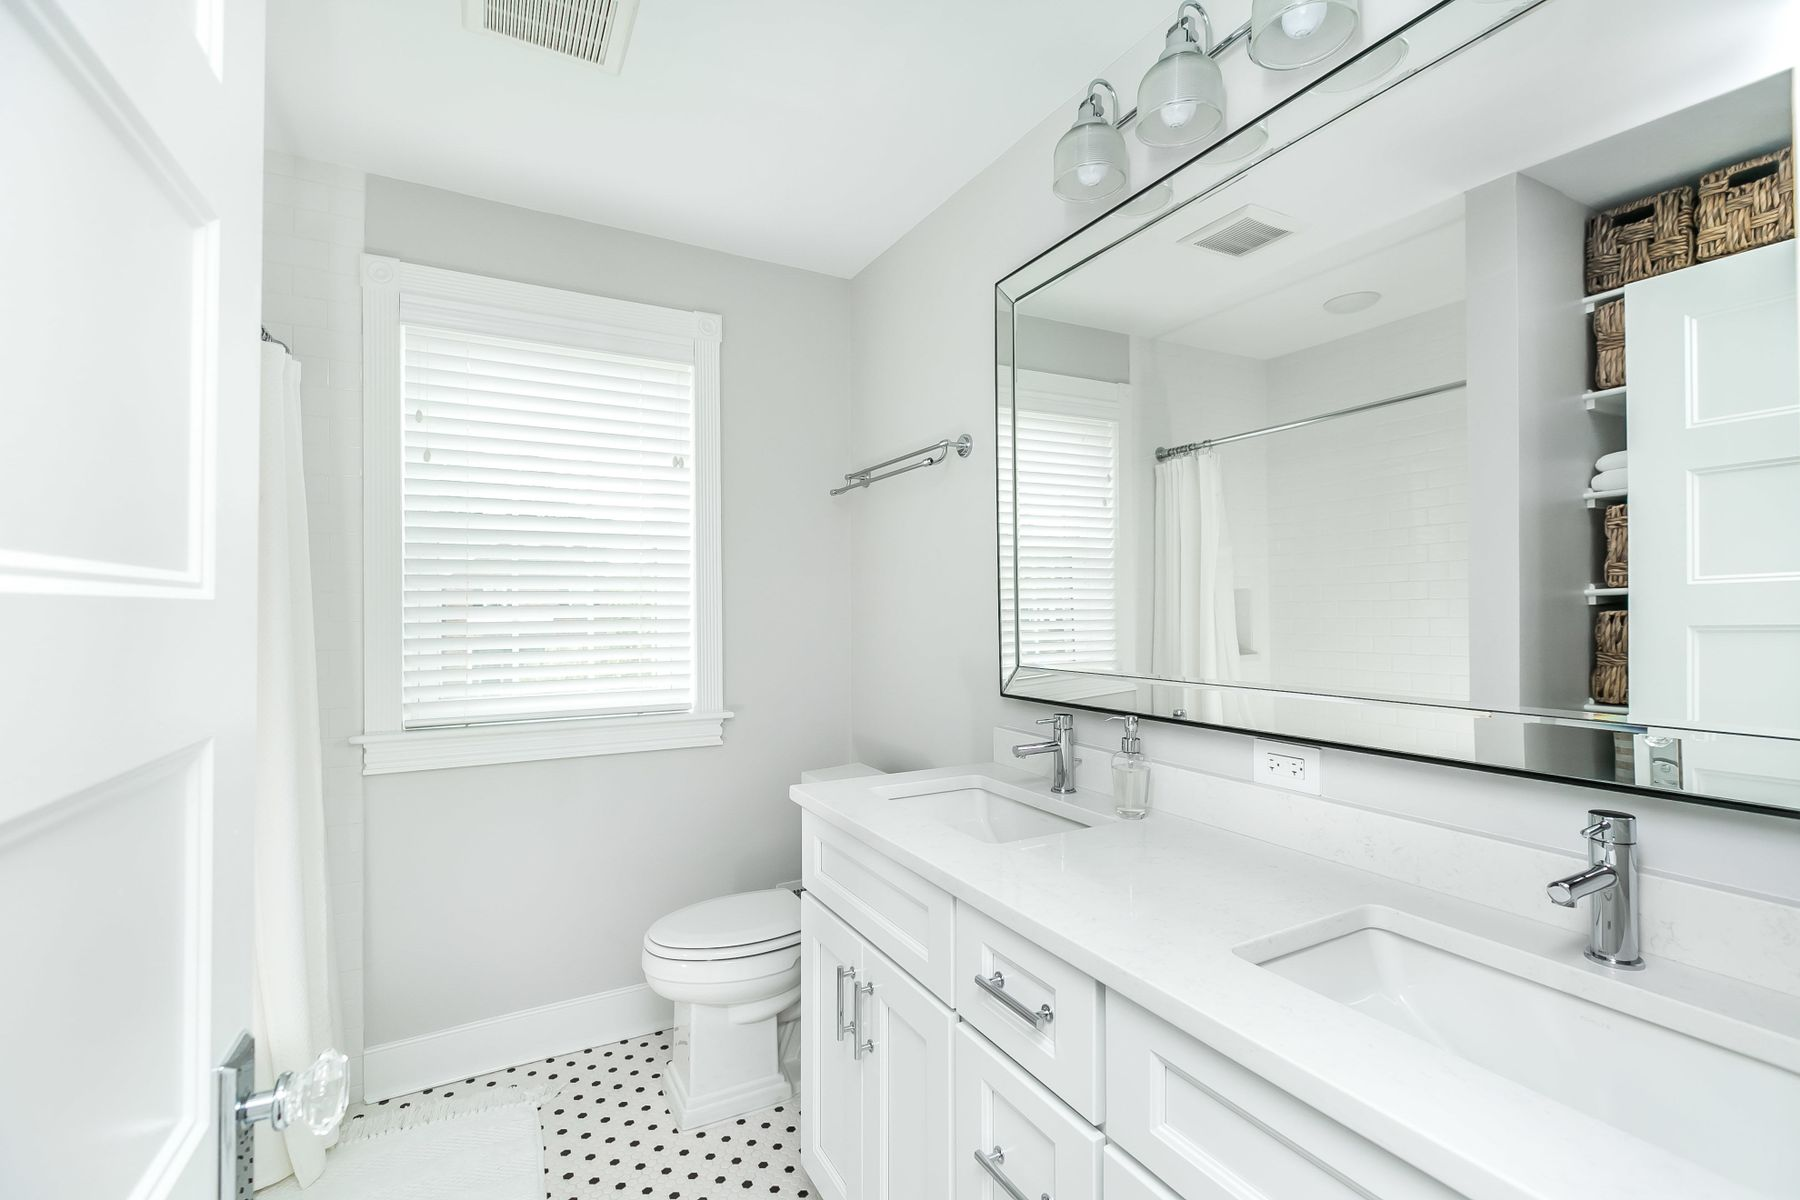 View of bathroom on and large mirror across shared sinks